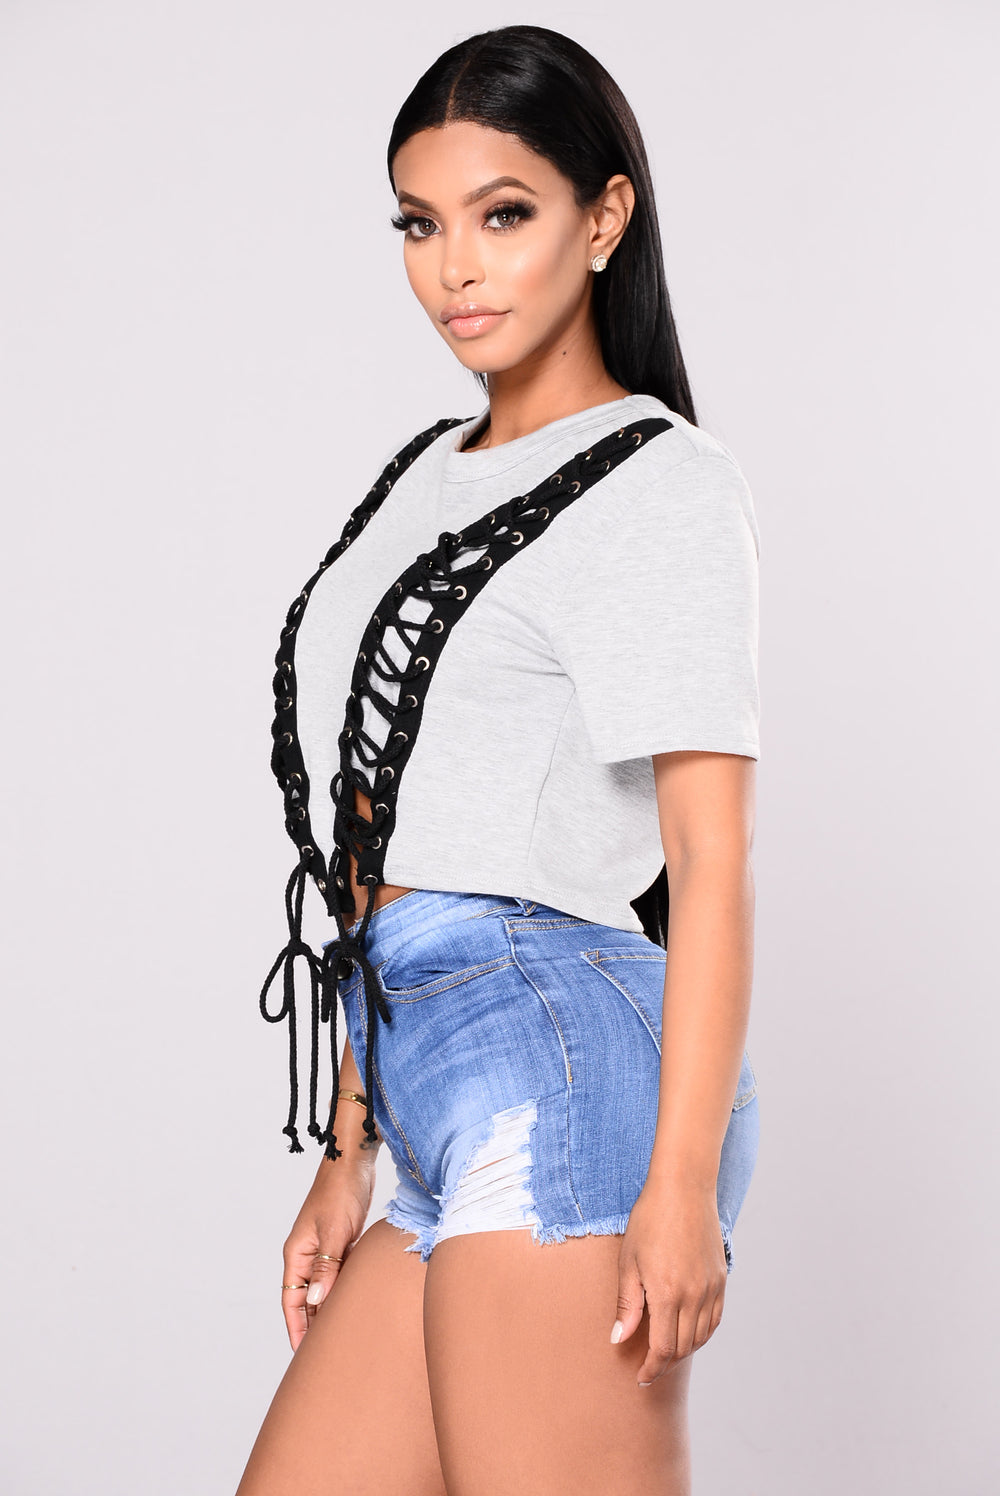 Get In Line Top - Grey/Black